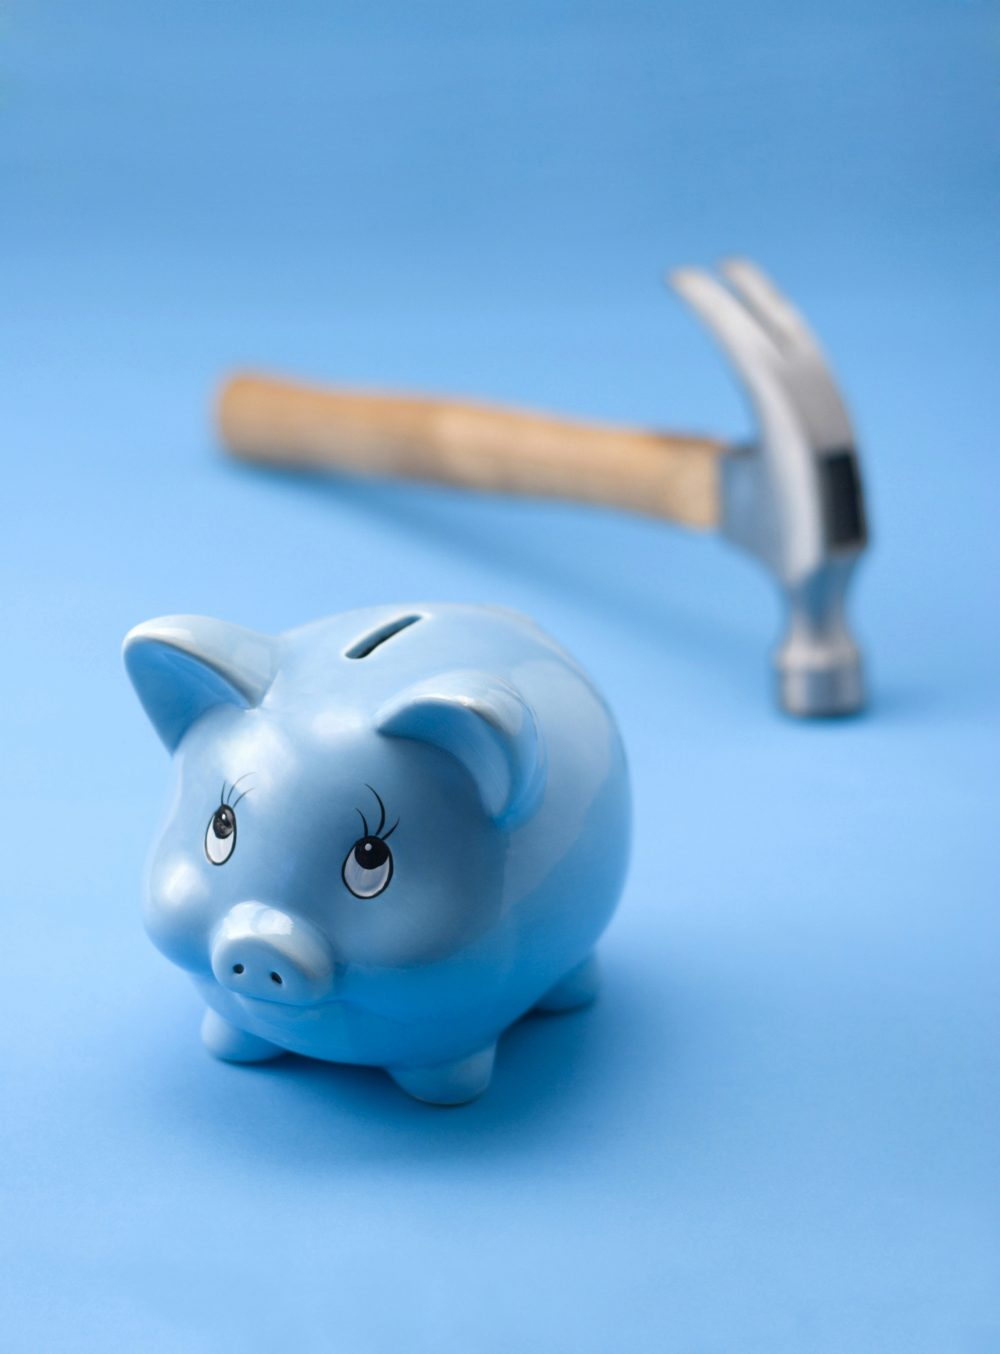 Blue piggy bank with hammer in the background